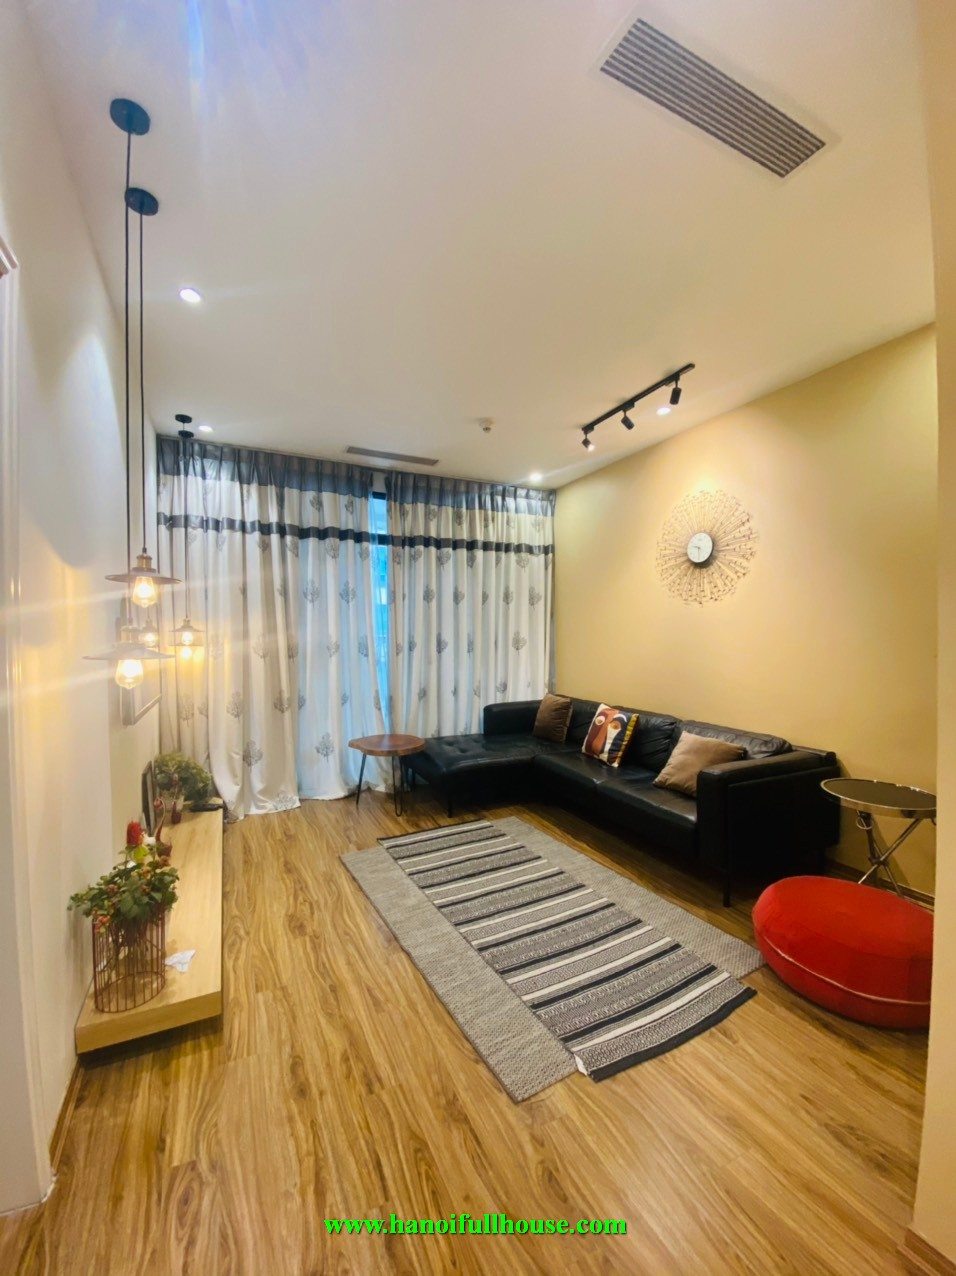 1 BR luxury condo in Vincom Ba Trieu for Japanese, Europeans and Others